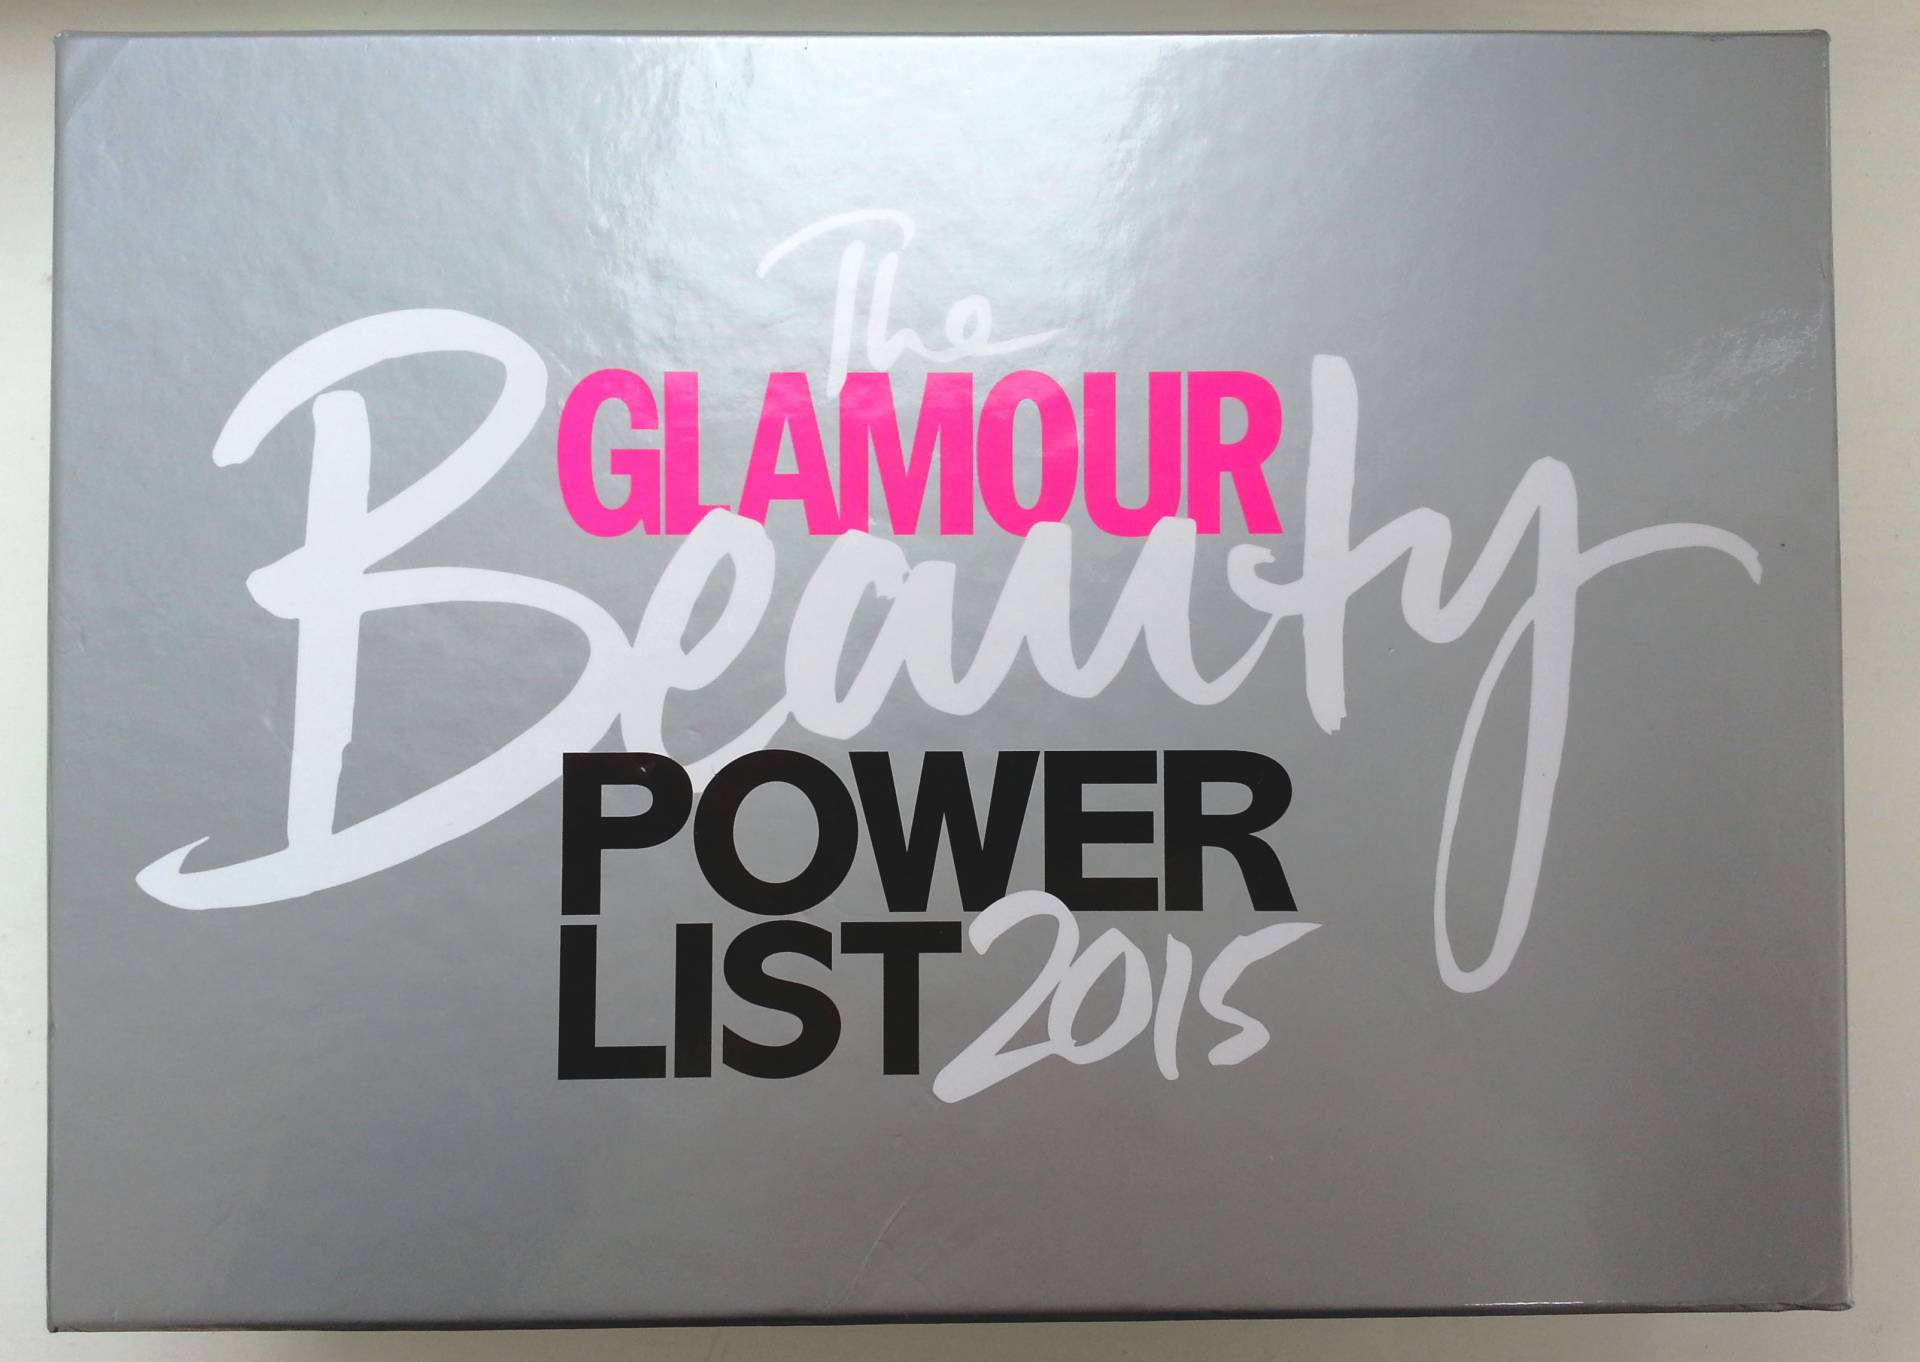 Latest in Beauty The Glamour Beauty Power List 2015